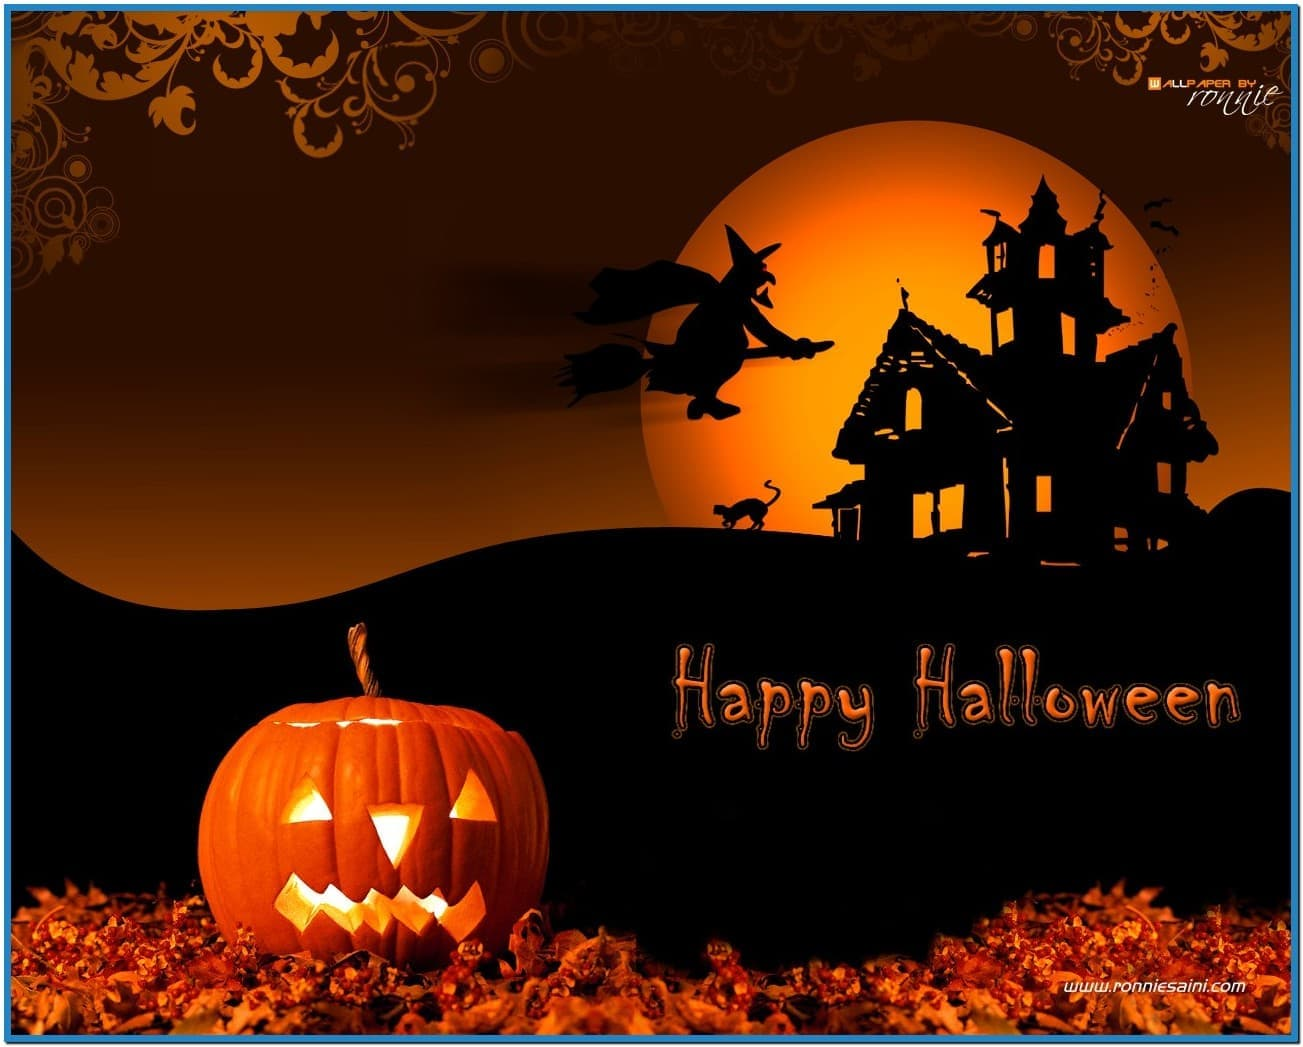 649 Halloween HD Wallpapers | Backgrounds - Wallpaper Abyss